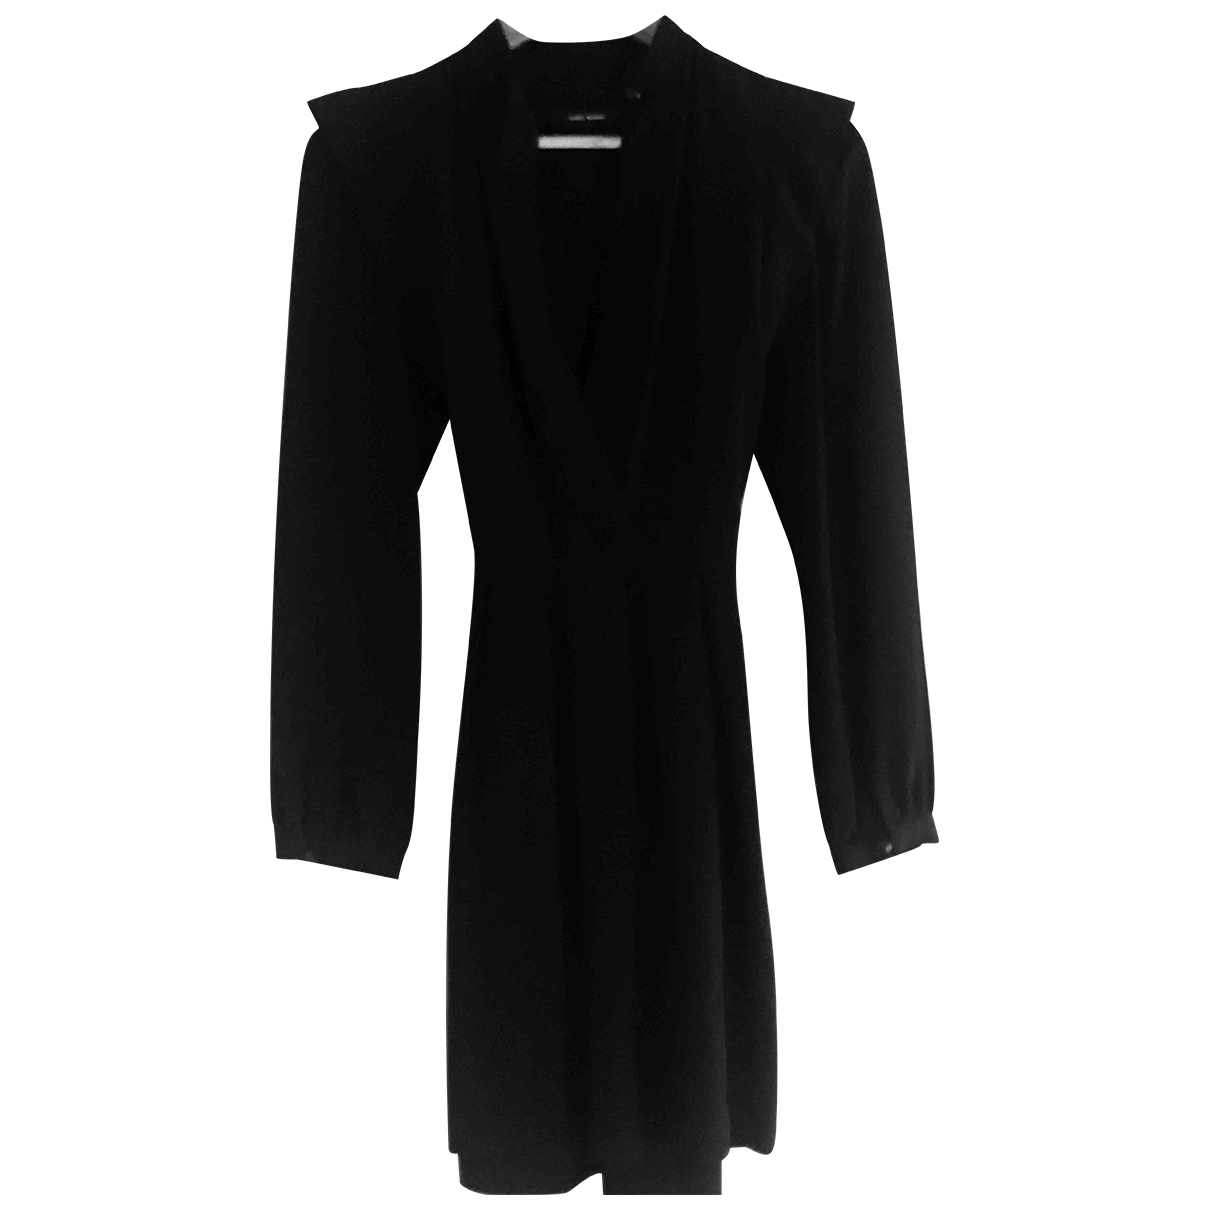 Isabel Marant \N Black dress for Women 34 FR